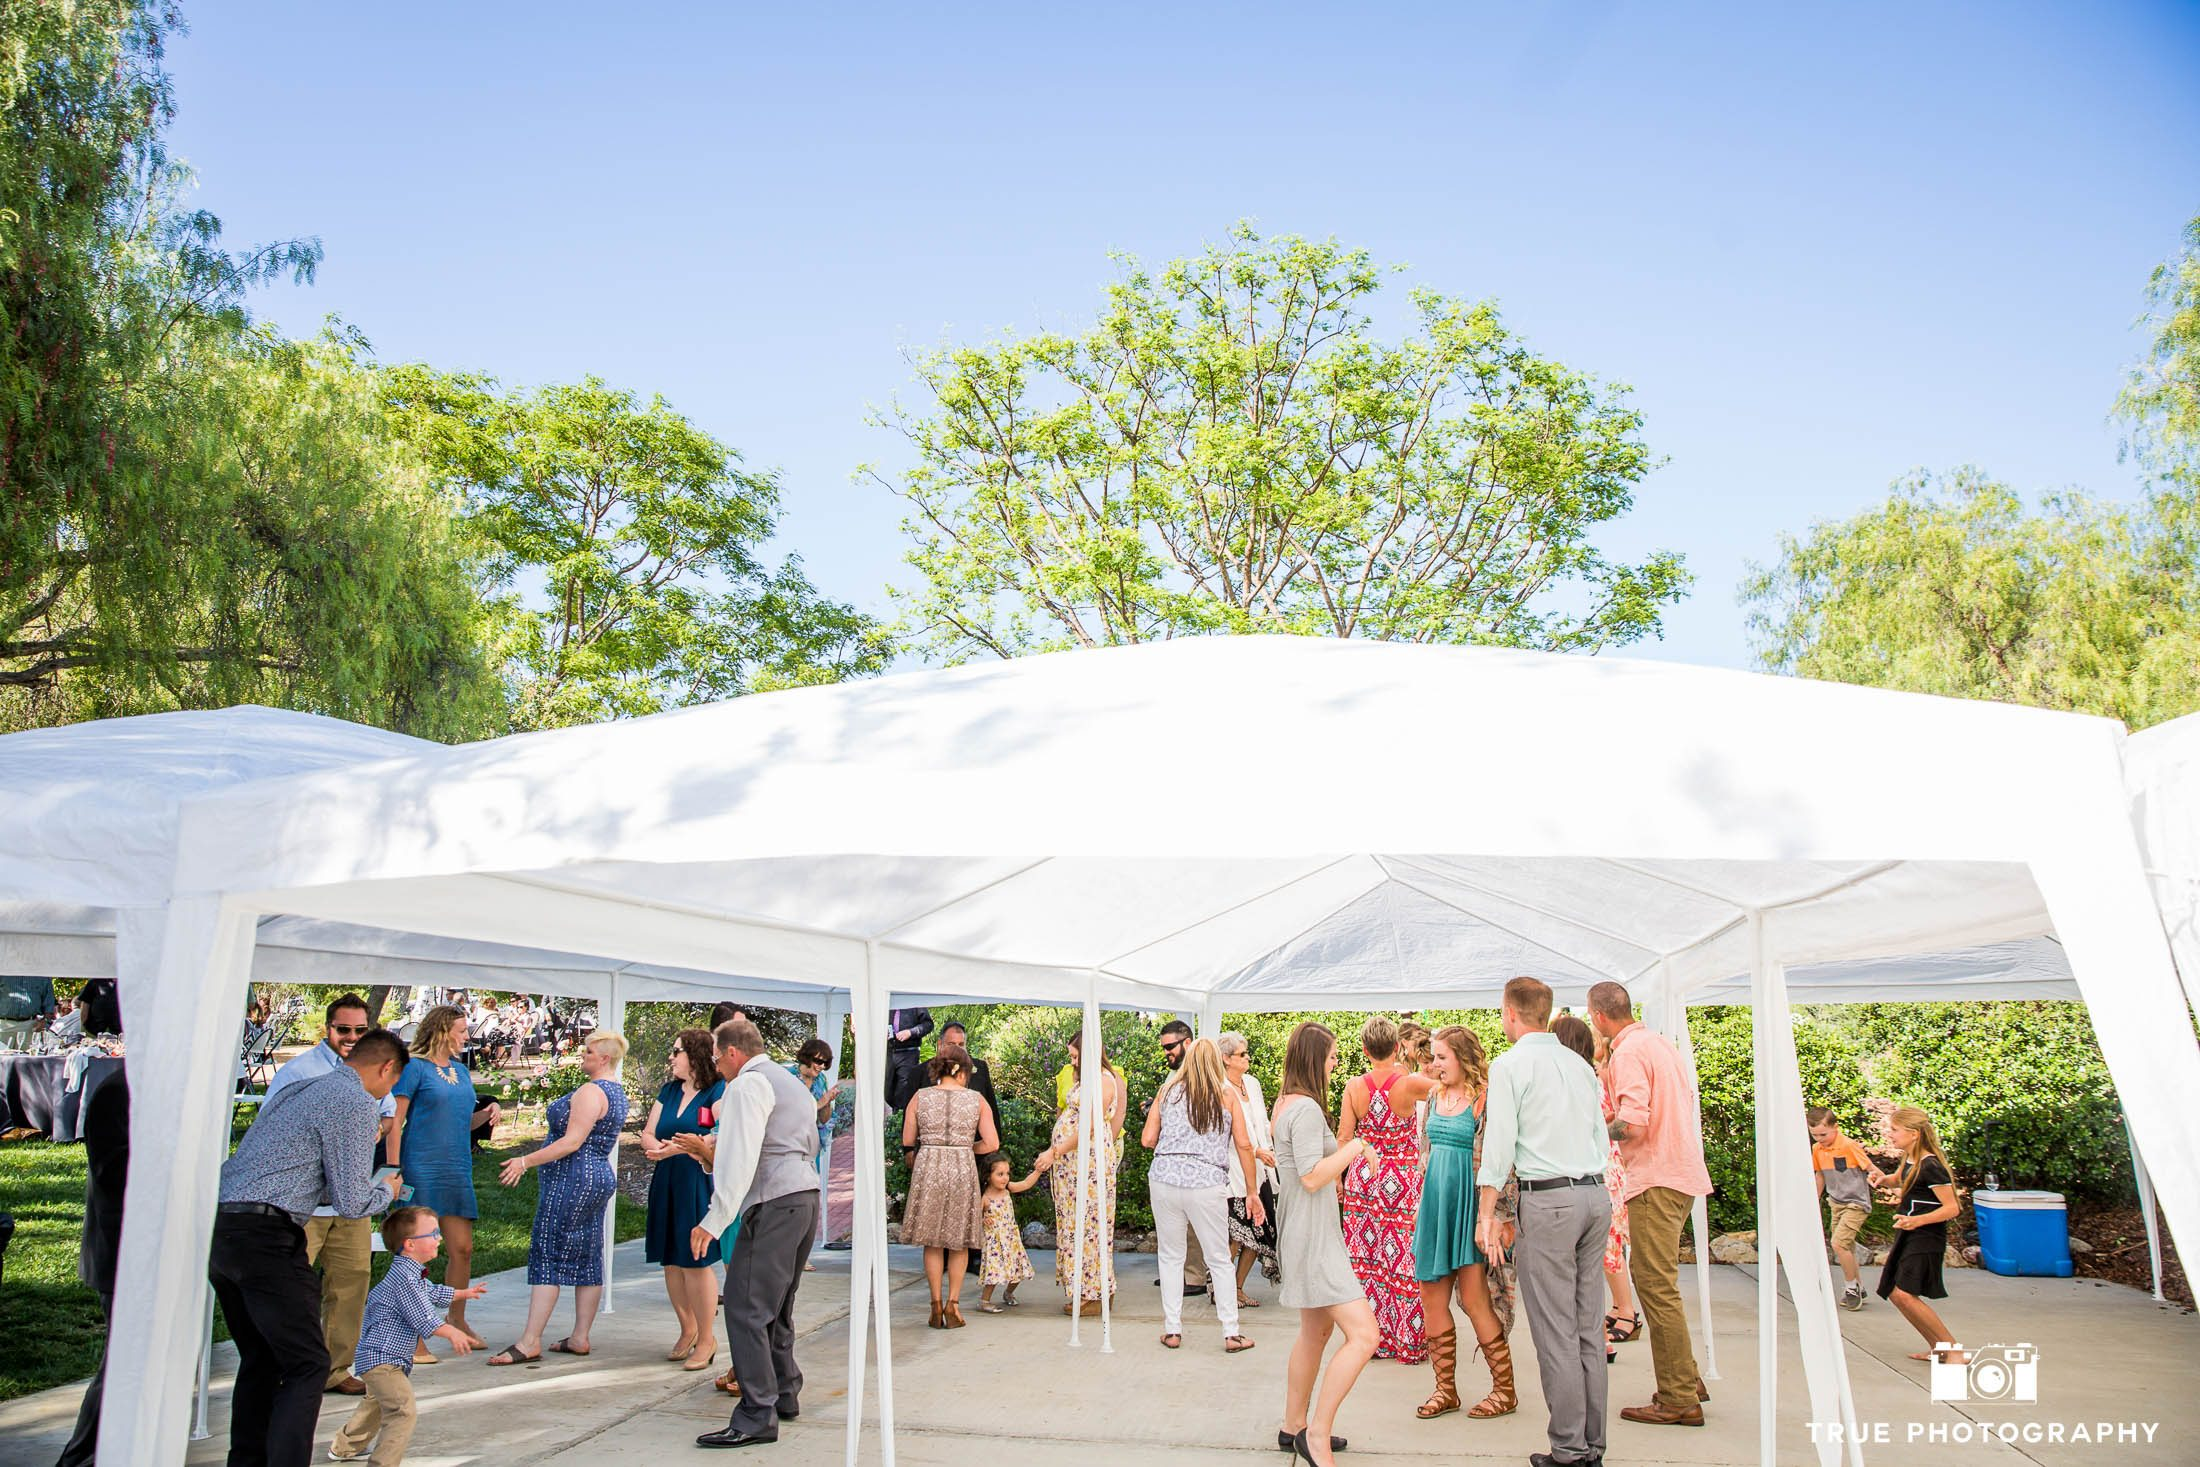 Wedding guests have fun dancing under tent at outdoor wedding reception